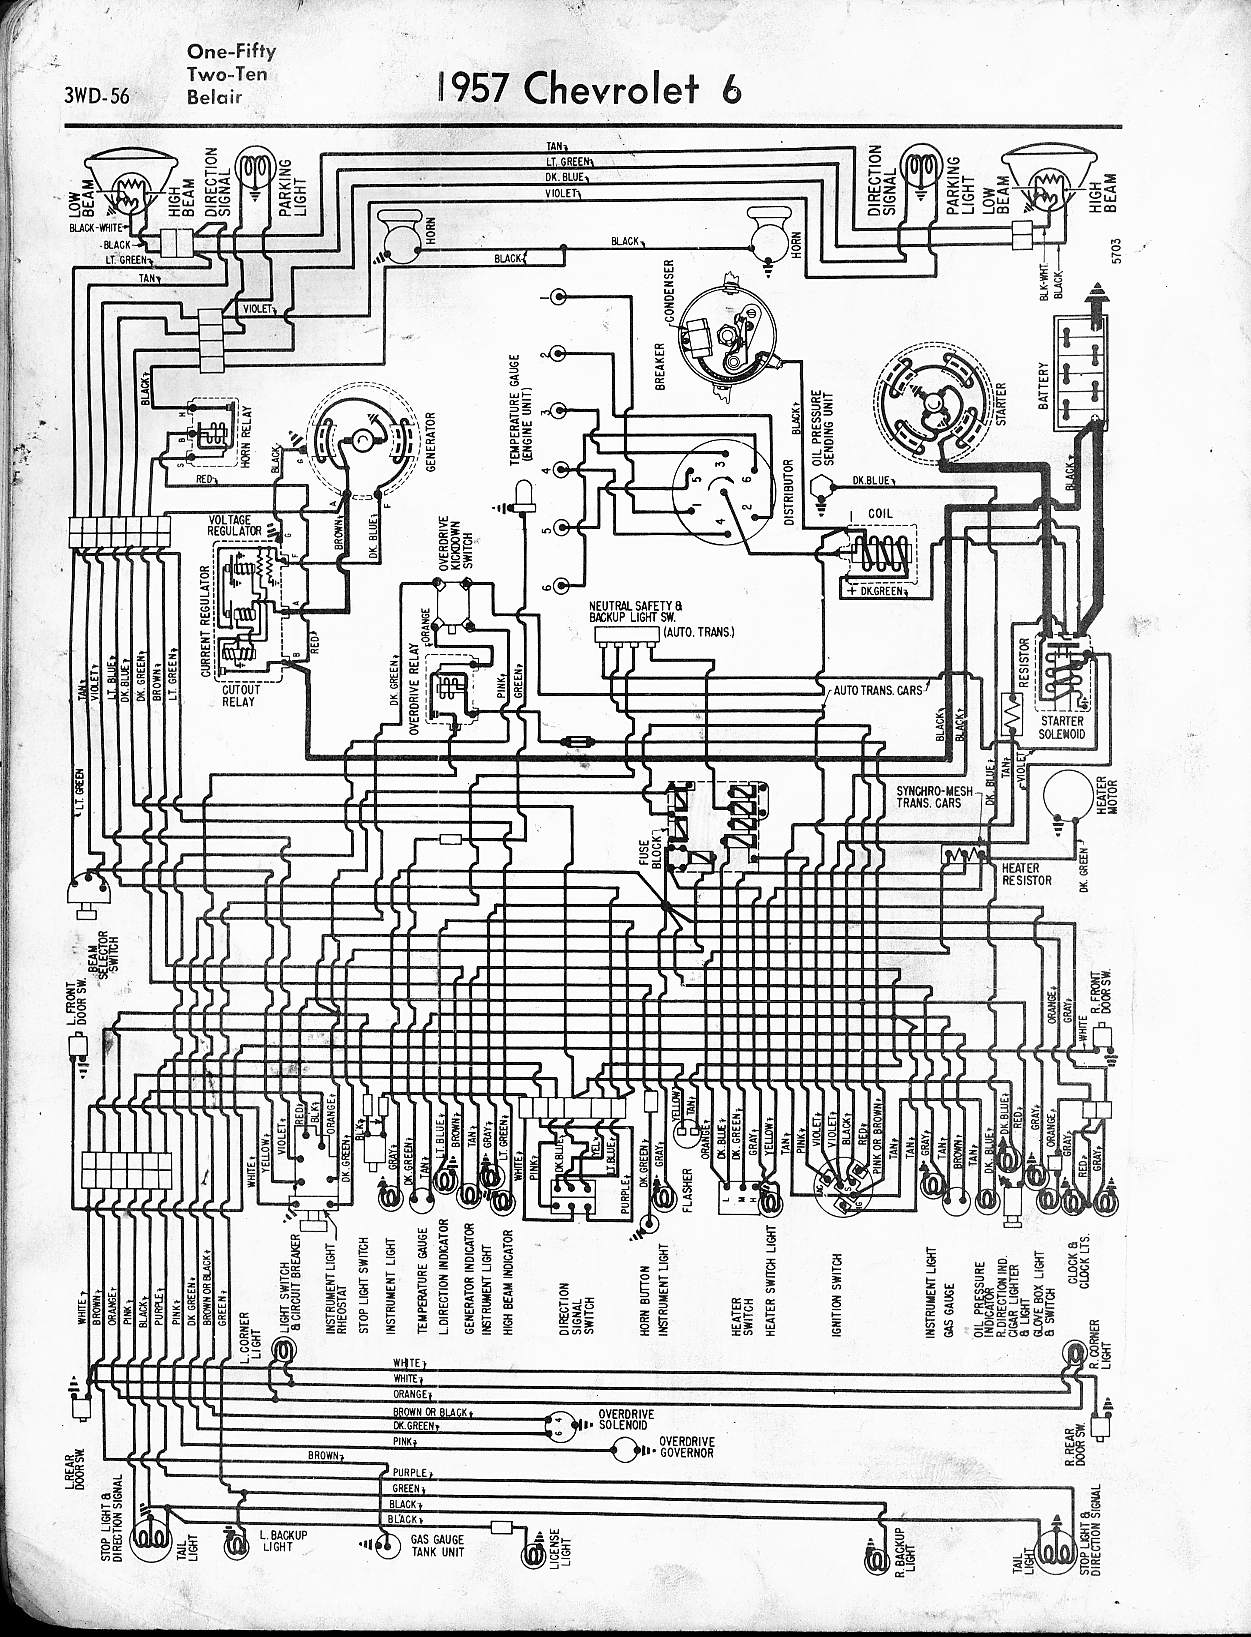 1956 Chevy Bel Air Headlight Switch Diagram Diy Enthusiasts Wiring A 56 Chevrolet Diagrams U2022 Rh Dancesalsa Co 57 1957